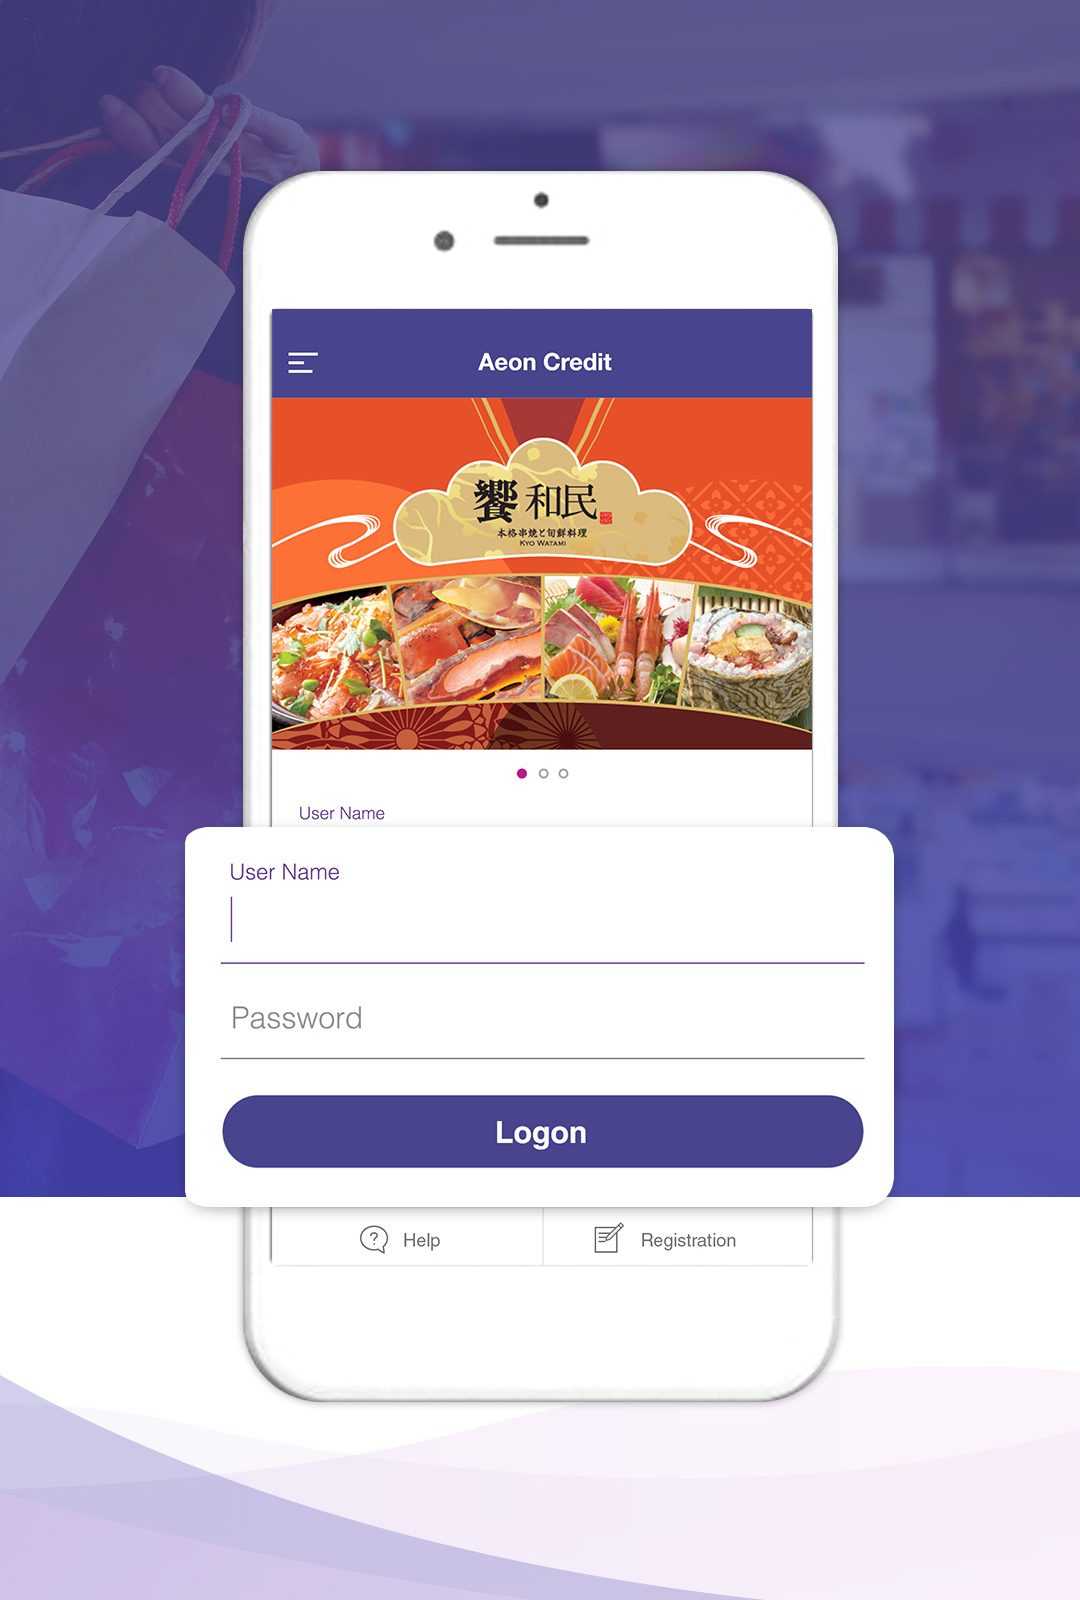 Credit Card and Loan Application with Aeon HK App